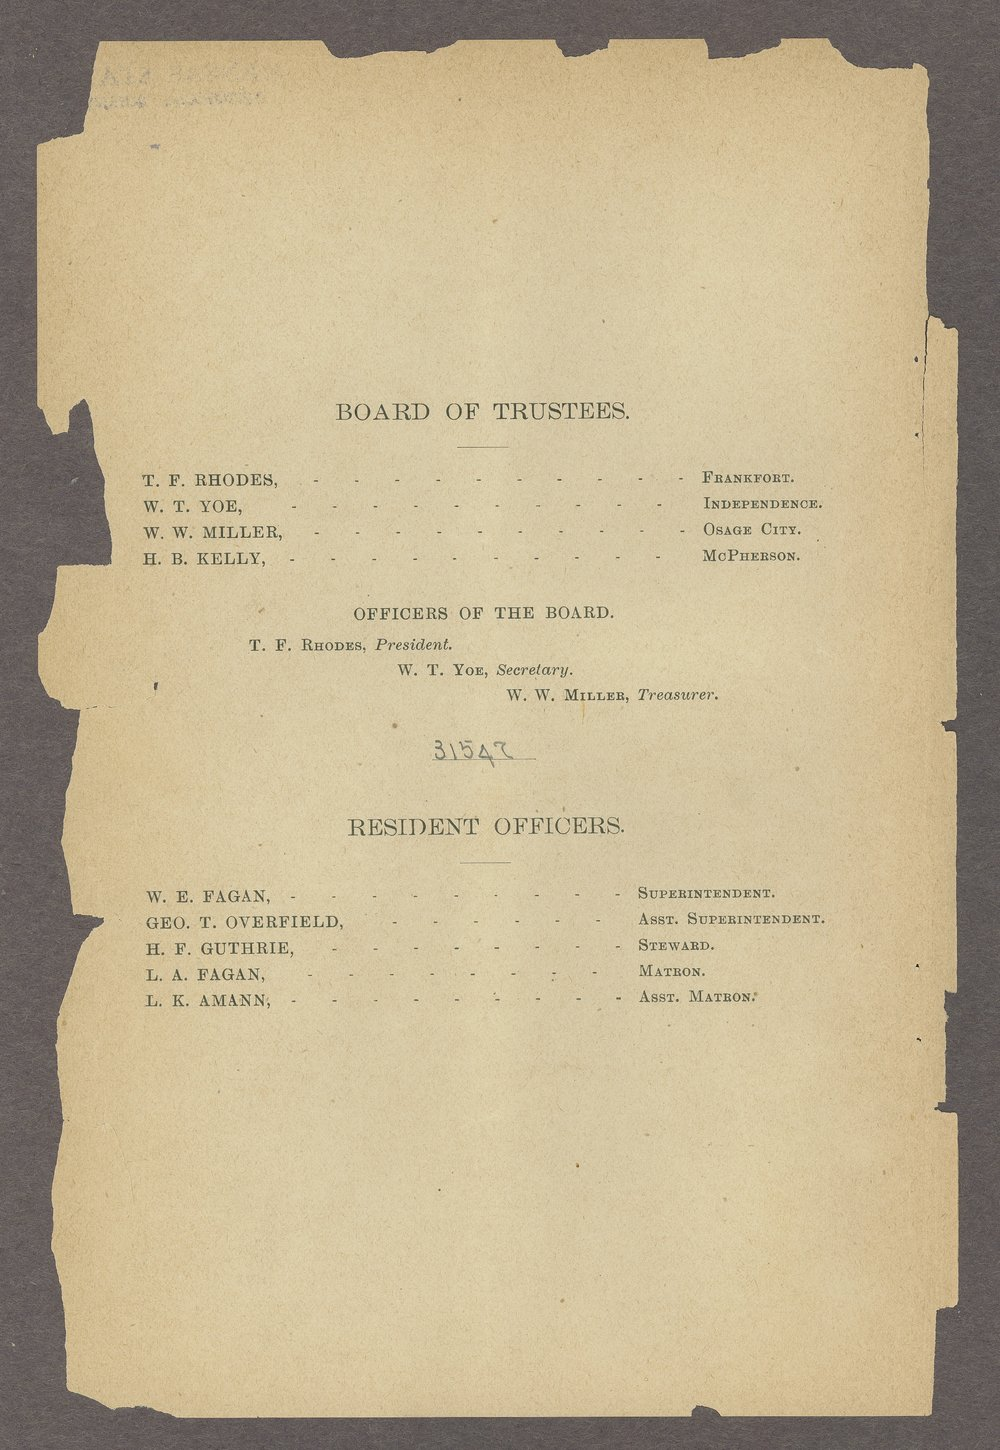 Biennial report of the State Reform School, 1892 - 4